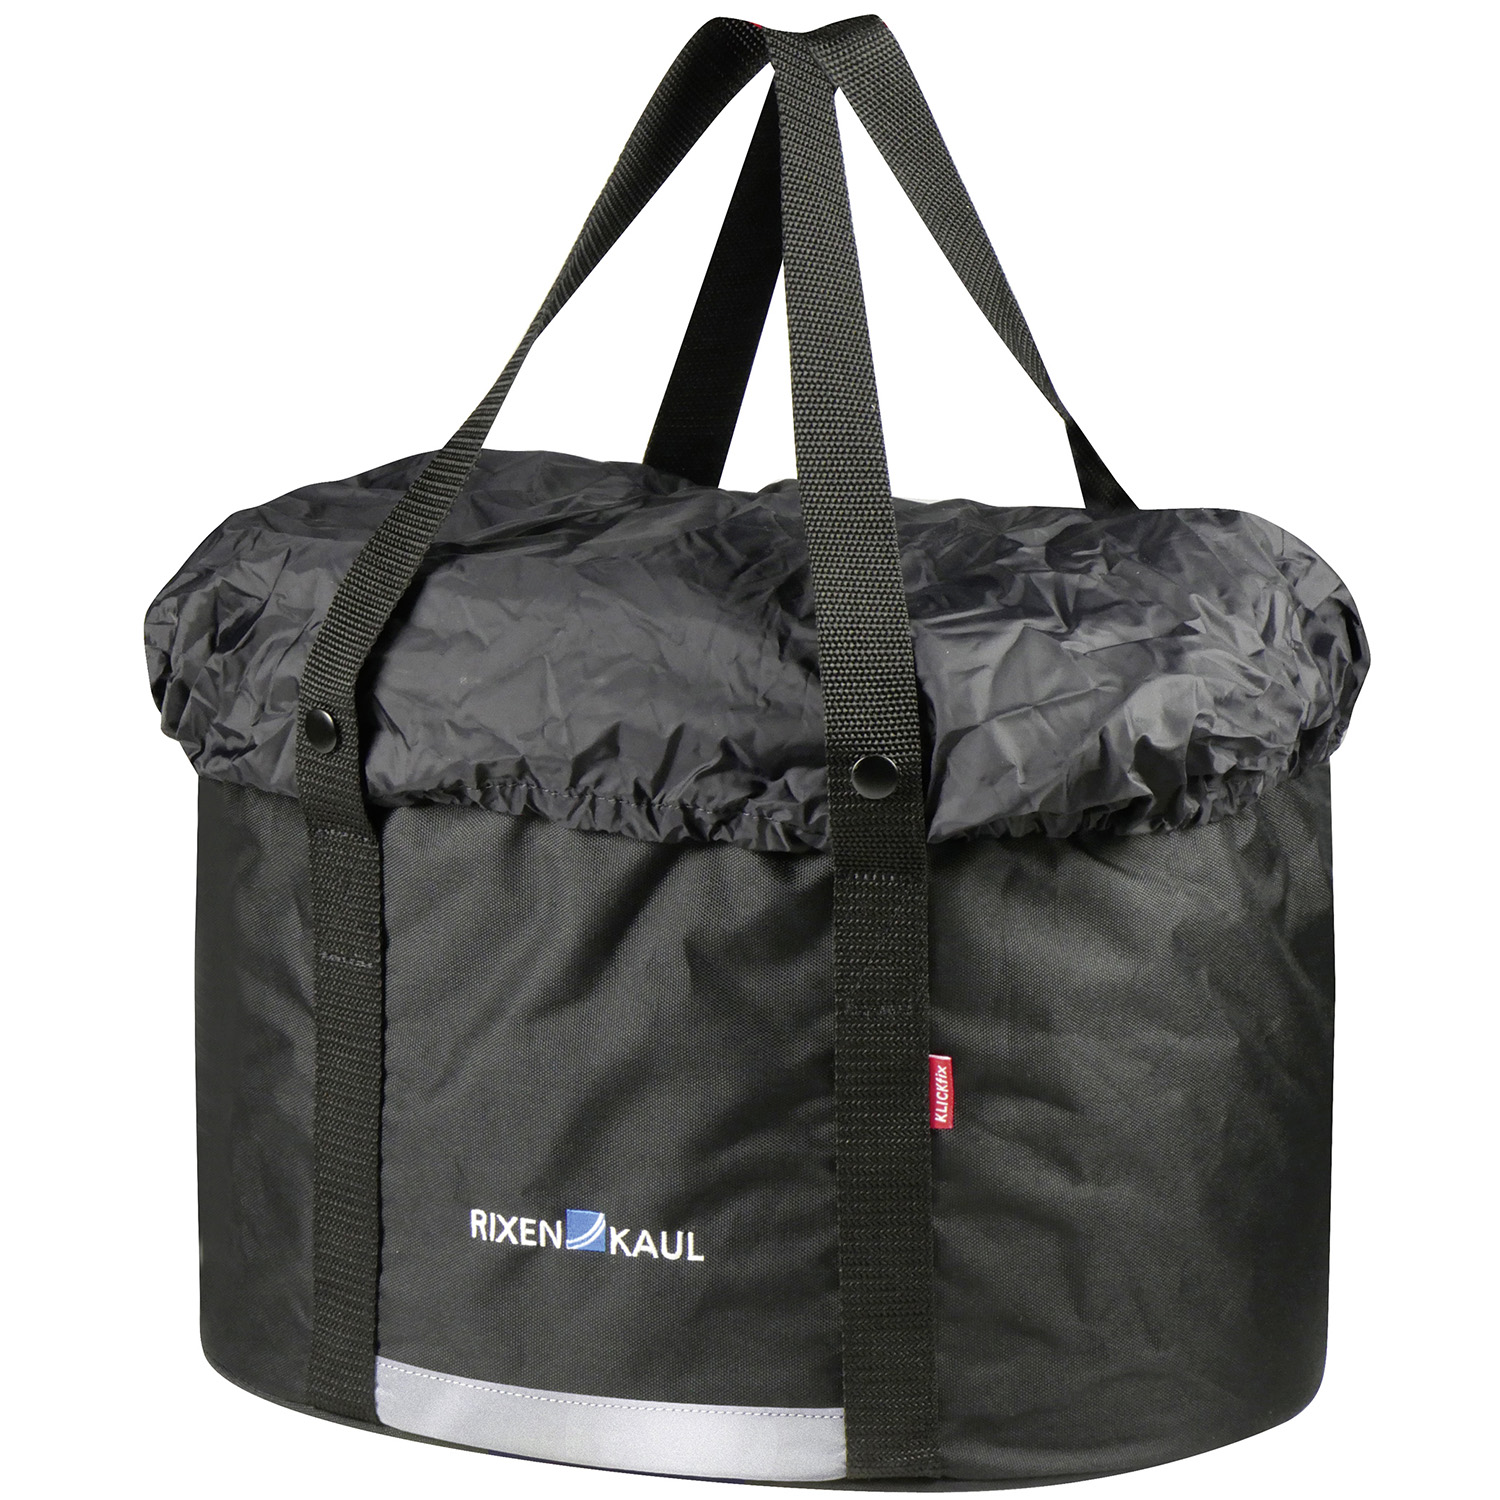 Shopper Plus, shopping handlebar bag with raincover